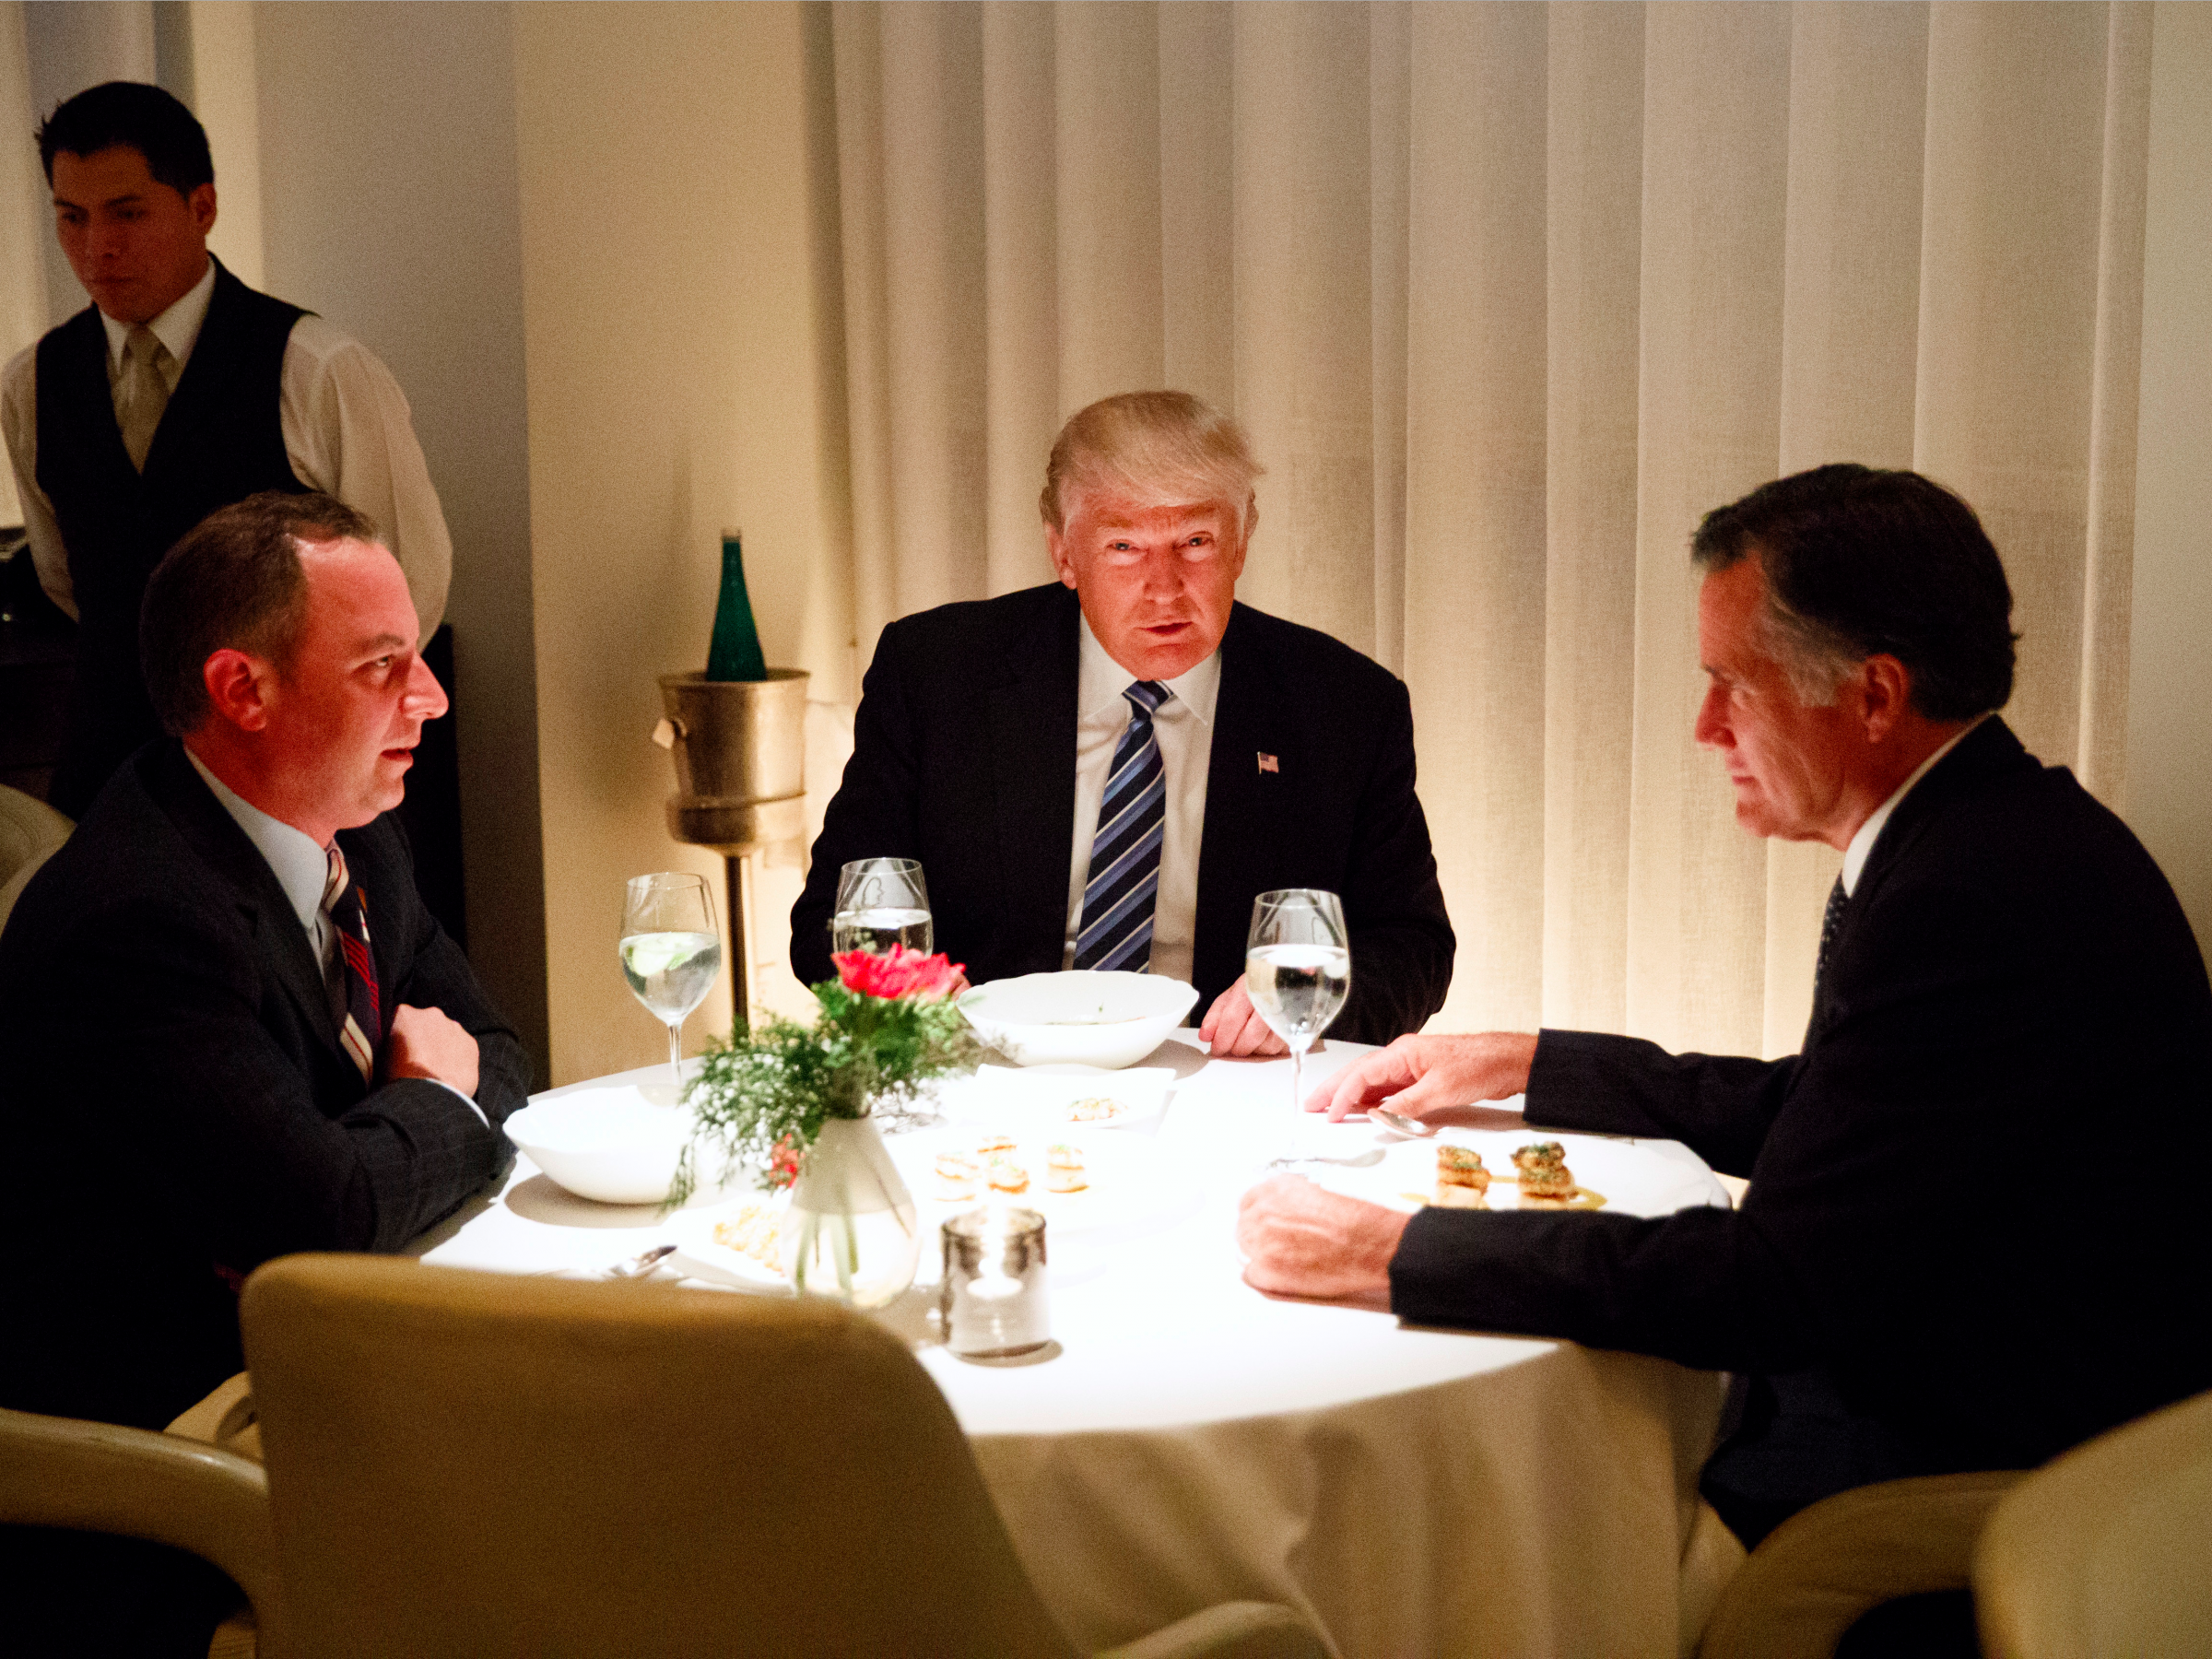 What it's like to eat at the $138-a-person restaurant where Trump dined with Mitt Romney